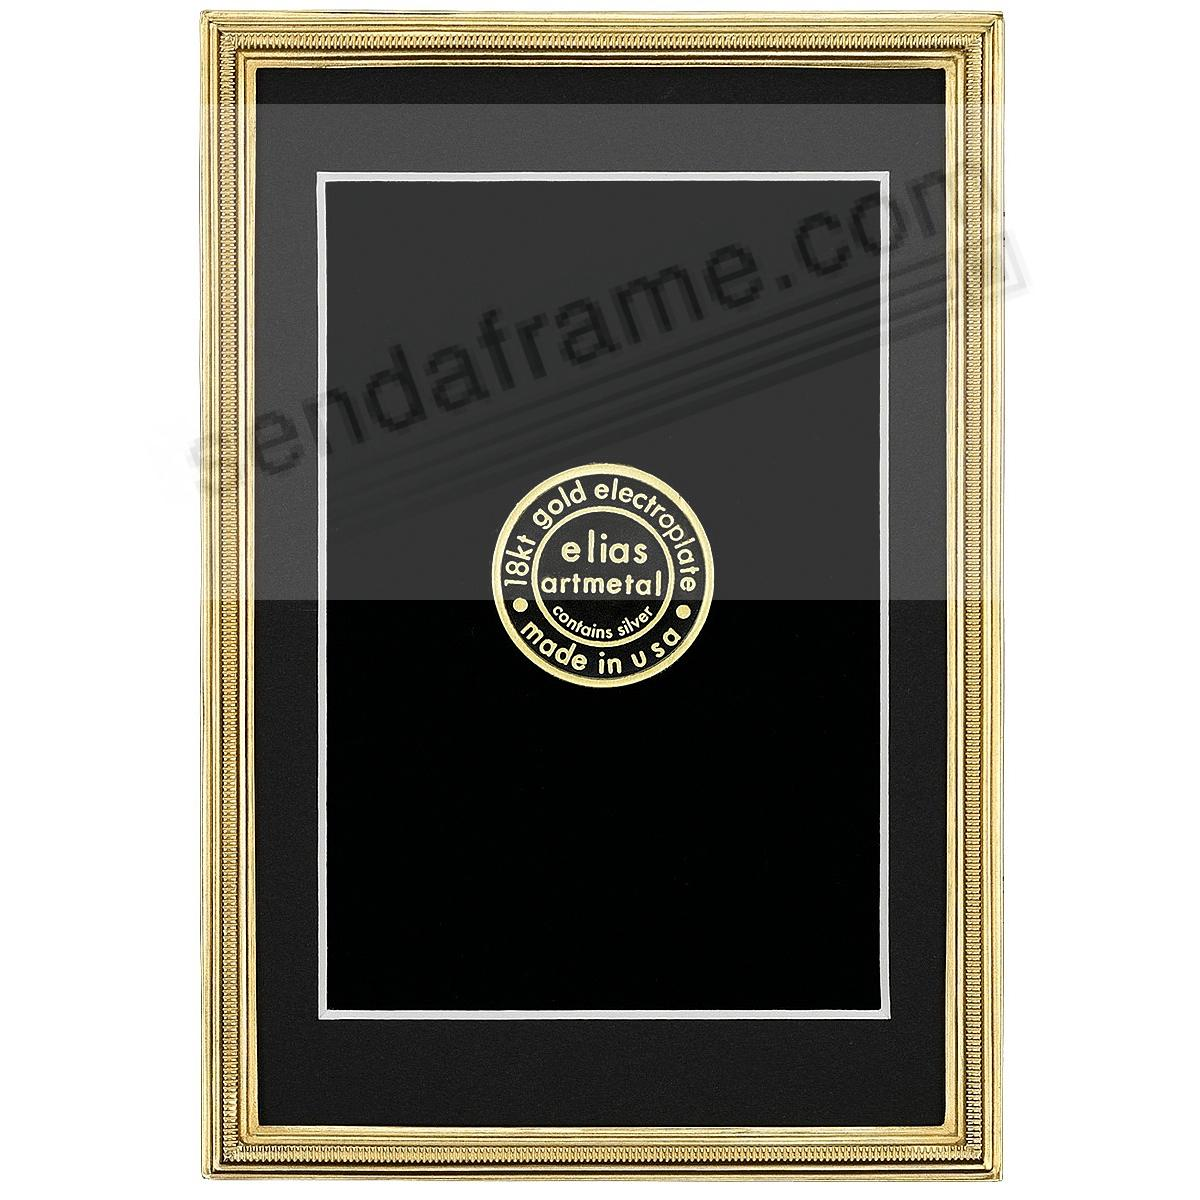 ZIPPER Fine 18kt Museum Gold over Pewter frame 8x10/7x9 by Elias Artmetal®